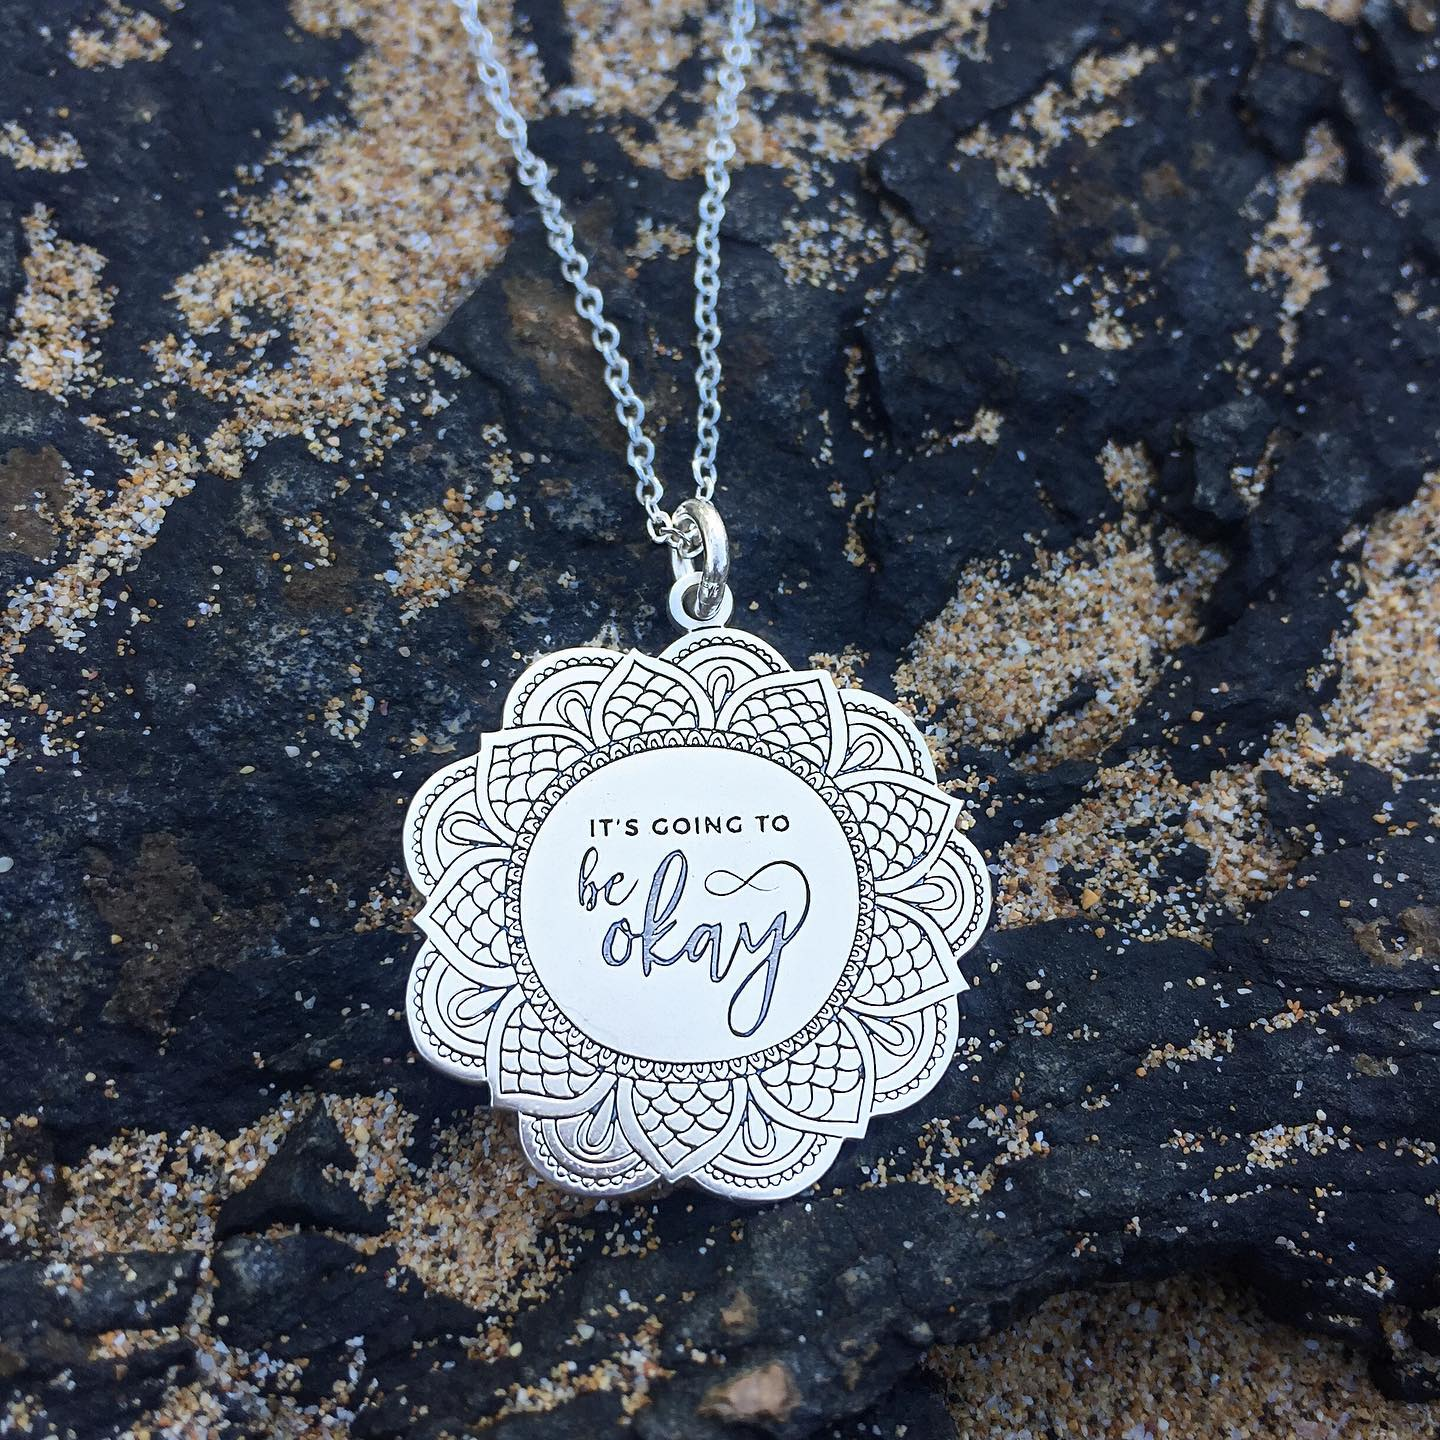 Say it out loud to yourself. Say it even if you don't believe it. It will comfort you and help you get through the awful times until things really are okay.All of our custom-engraved sterling pendants are created using the healing power of words, and double as a grounding tool. I'm constantly holding on to mine when I wear it. 5% of net proceeds goes to @mentalhealthamerica. 